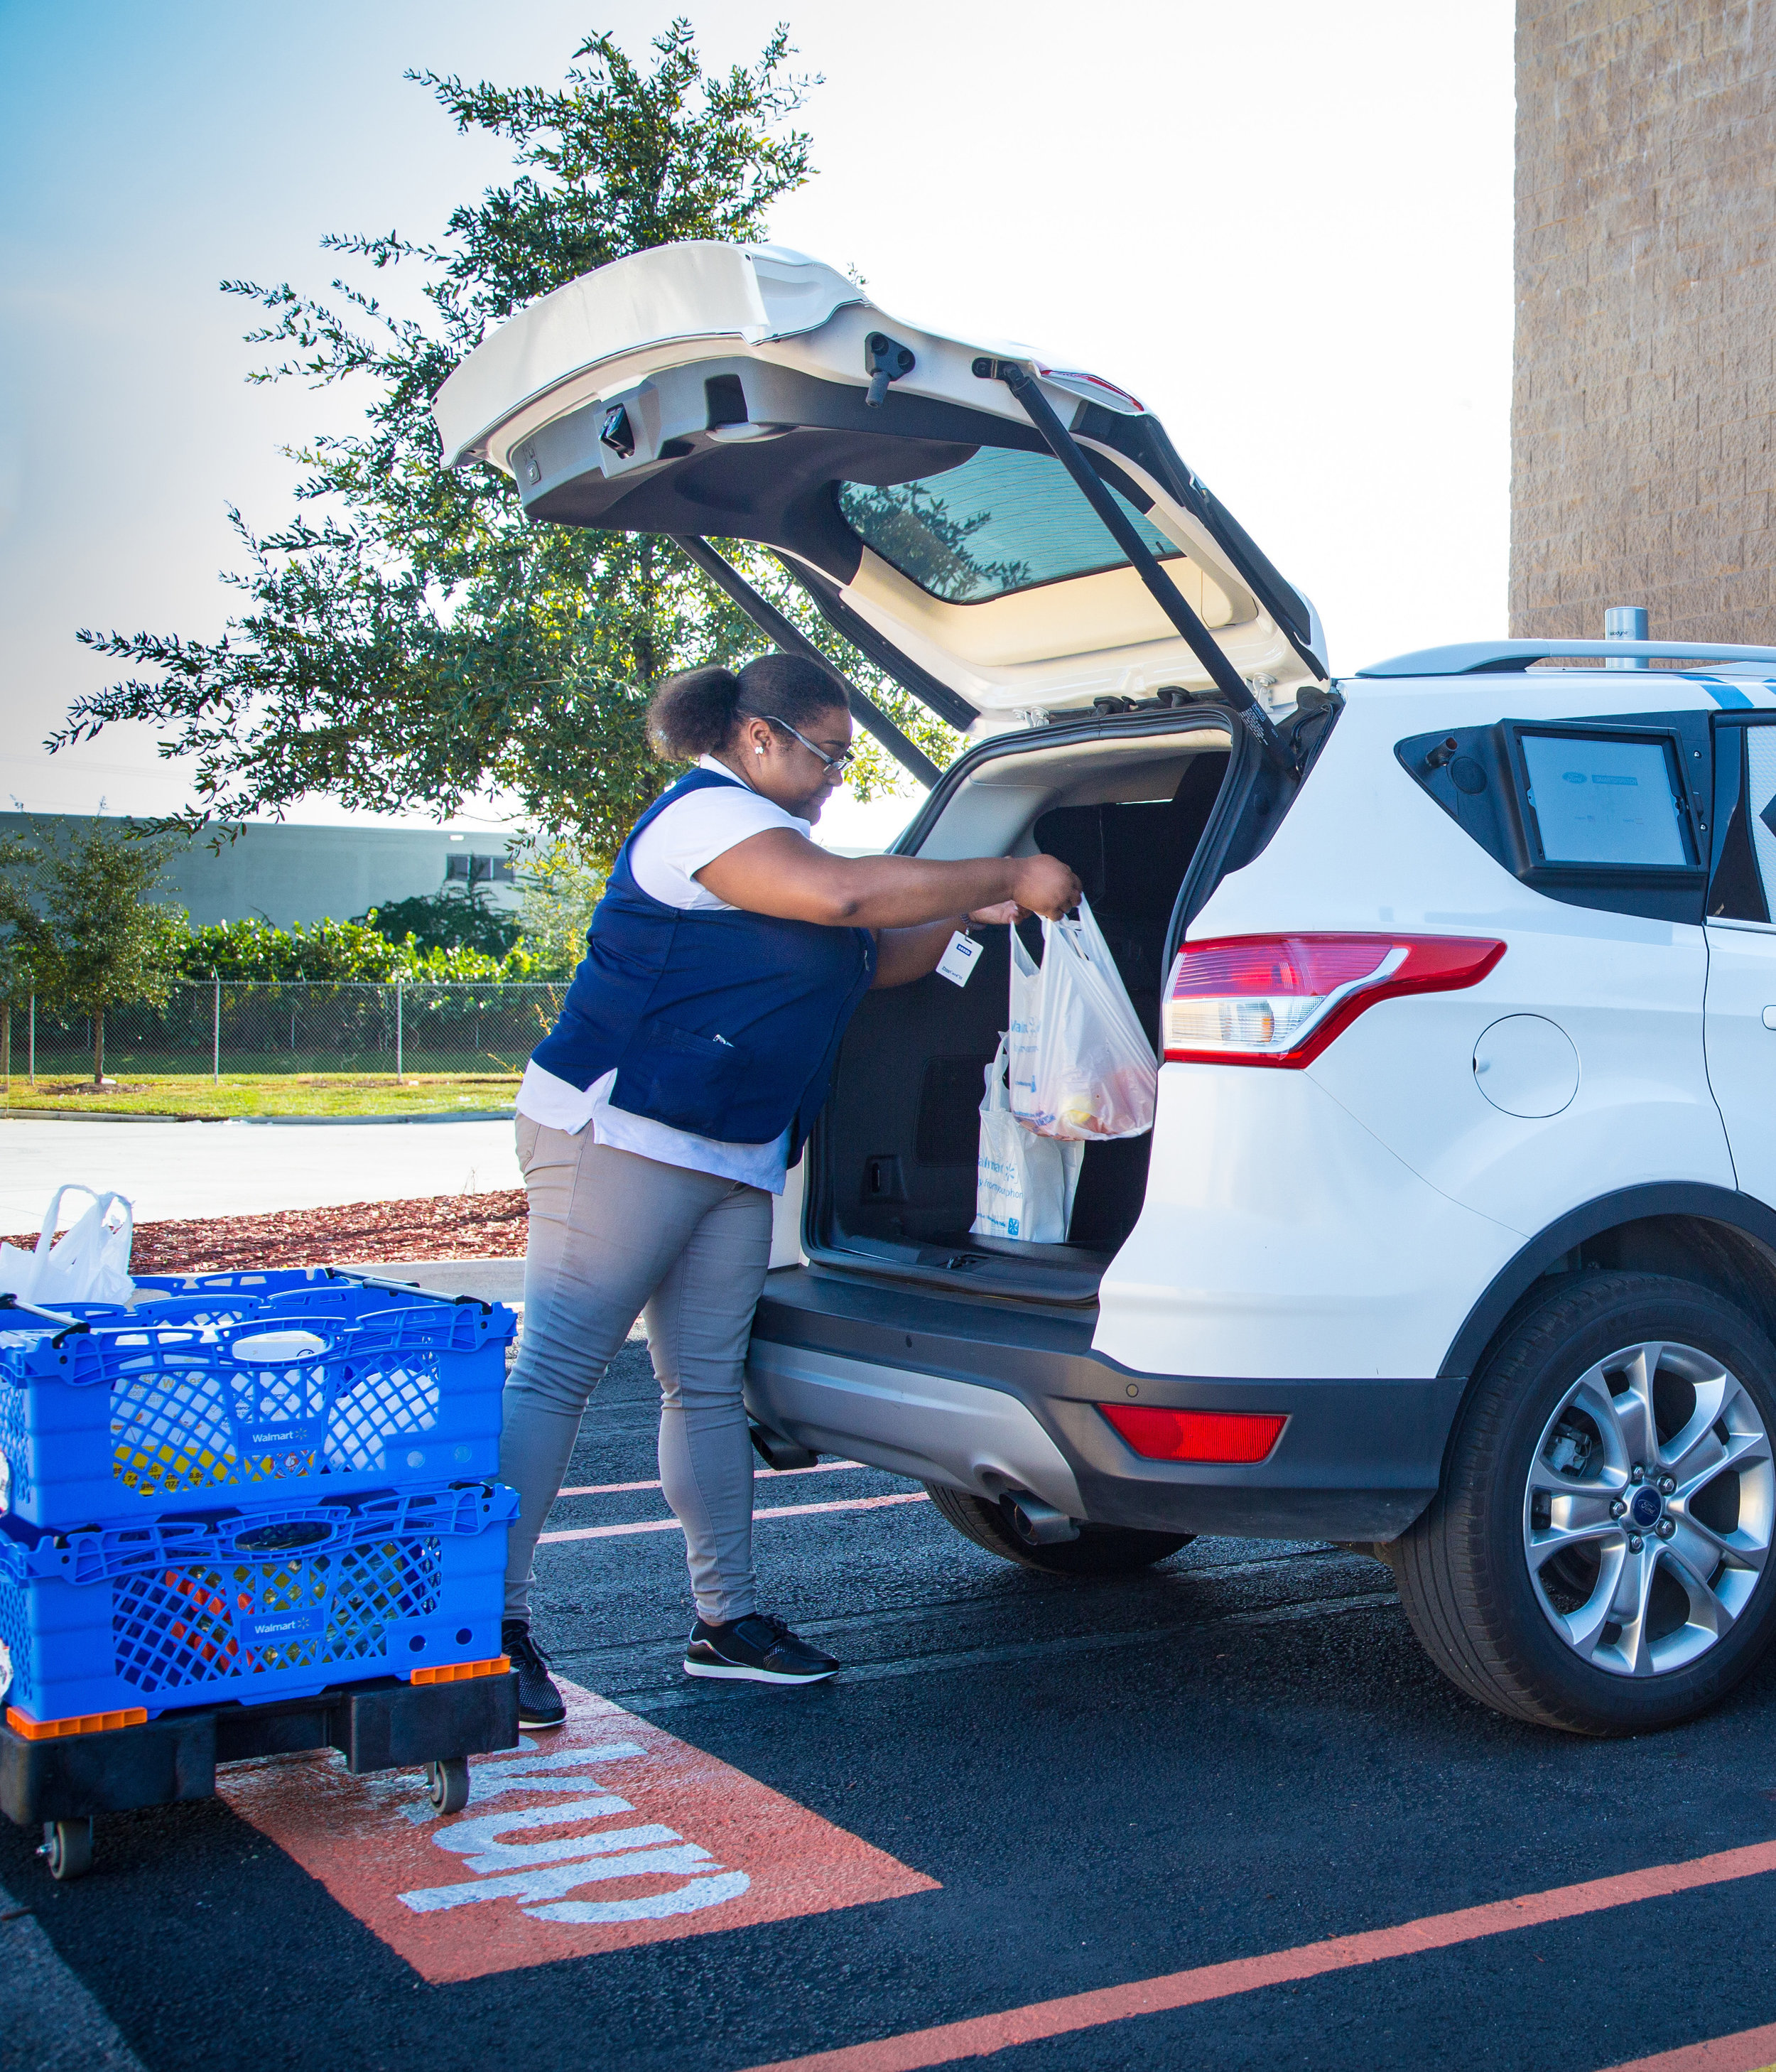 What is Spark Delivery? - Spark Delivery is Walmart's grocery delivery solution. Customers can buy groceries online to be delivered to them at their home or work. Walmart associates shop the order and Spark Delivery contractor drivers deliver.